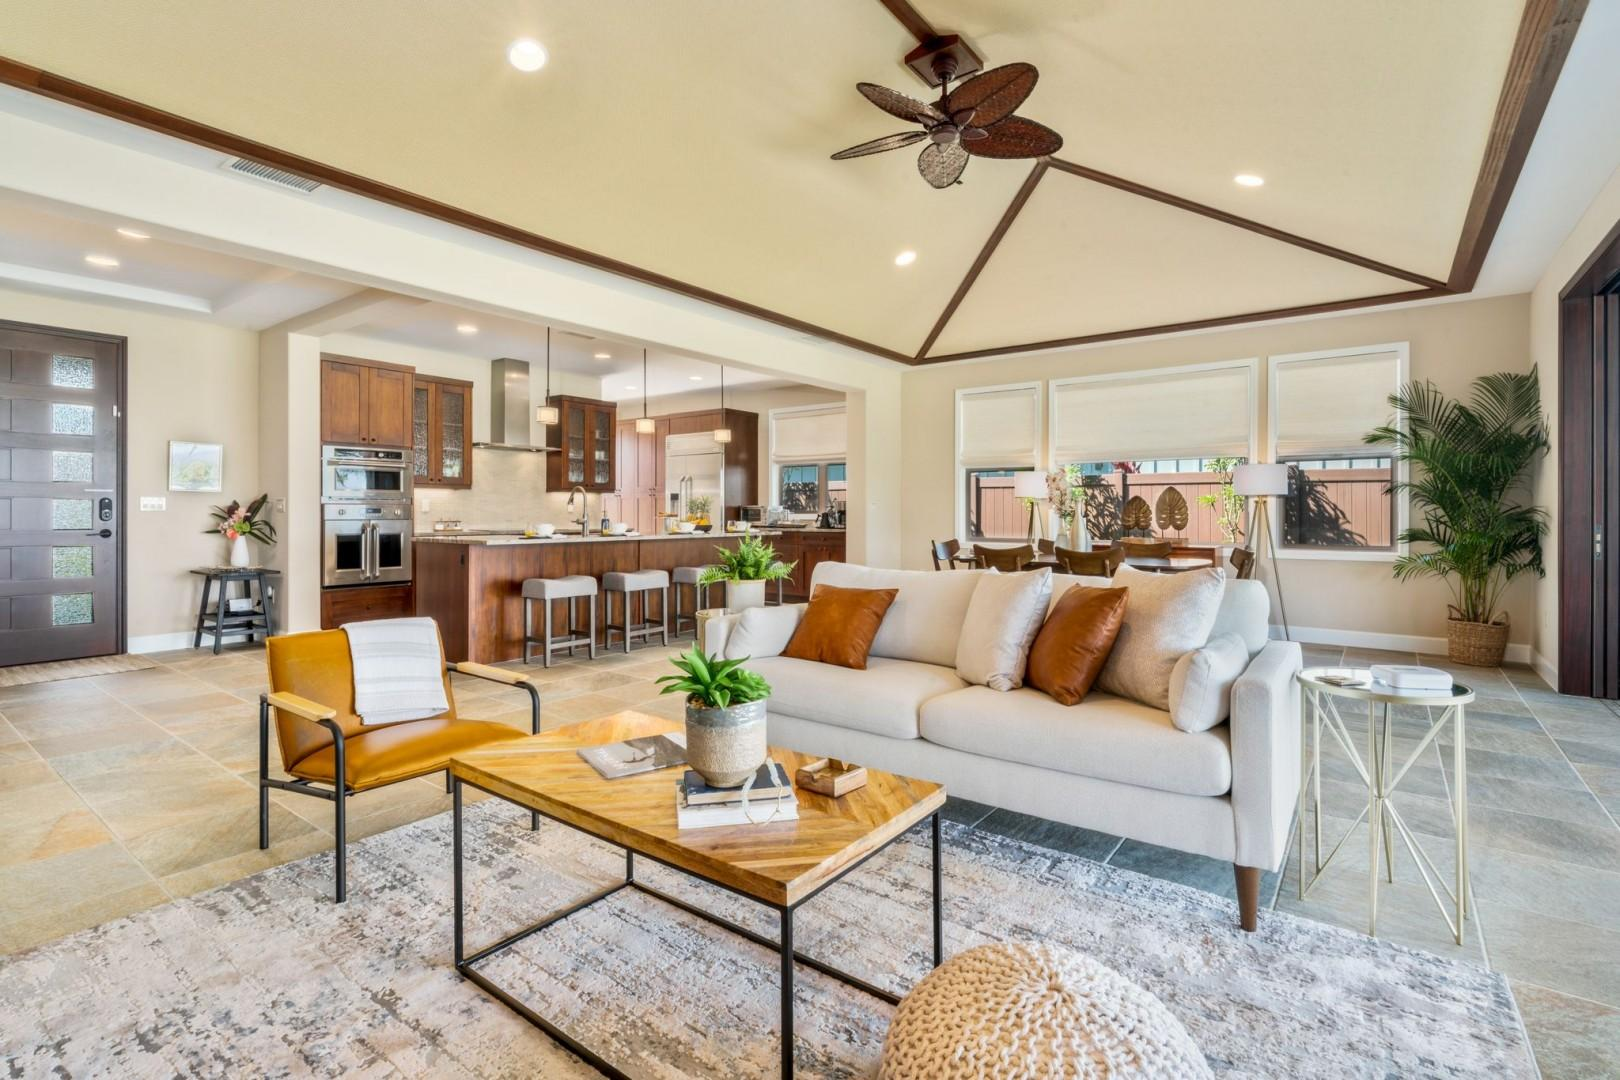 Open sight lines with vaulted ceiling make this property truly special